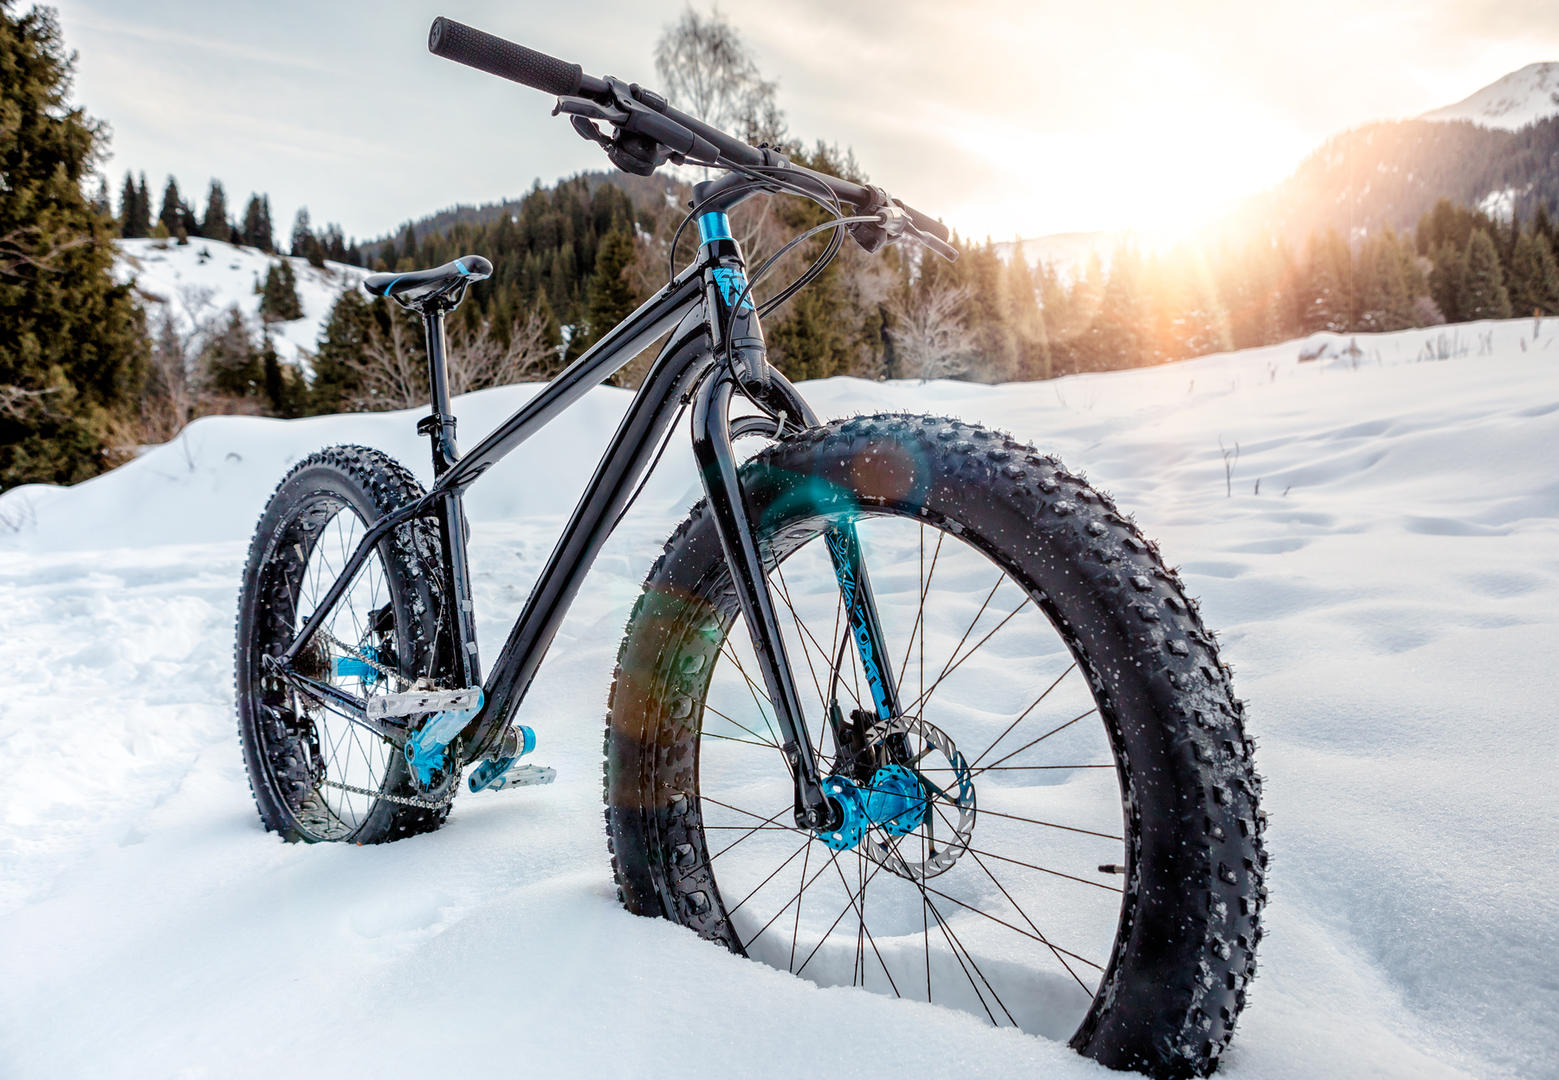 Bicycle sitting in the snow.